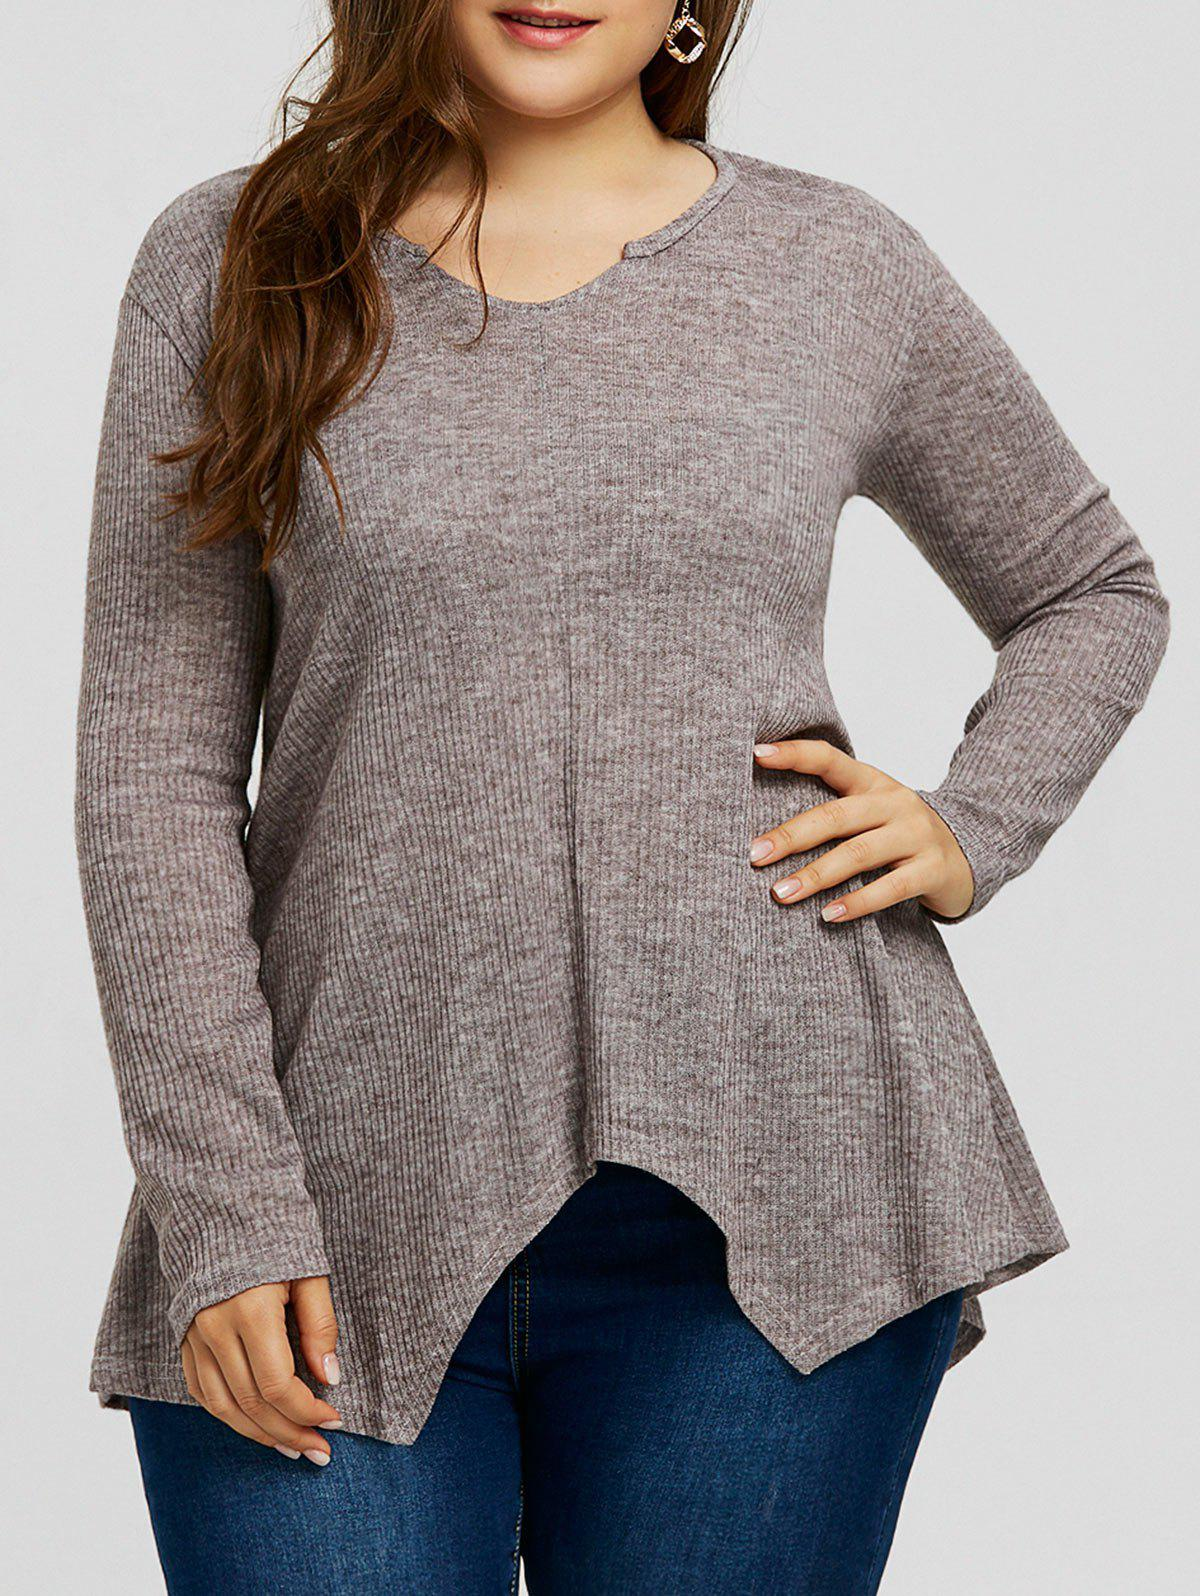 Plus Size Handkerchief Ribbed Sweater - GRAY 3XL